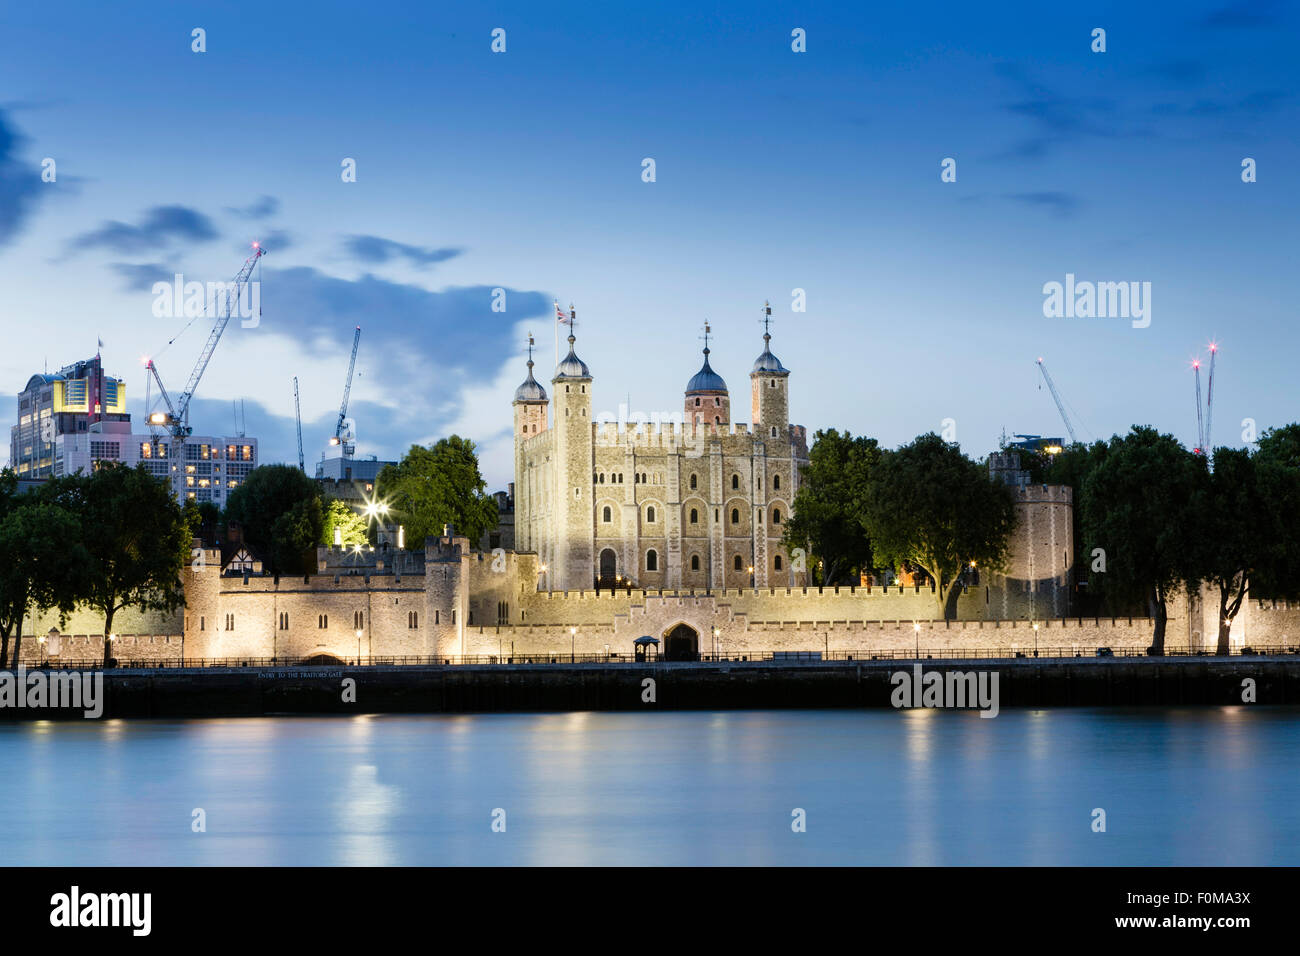 Der Tower of London, London, England Stockbild